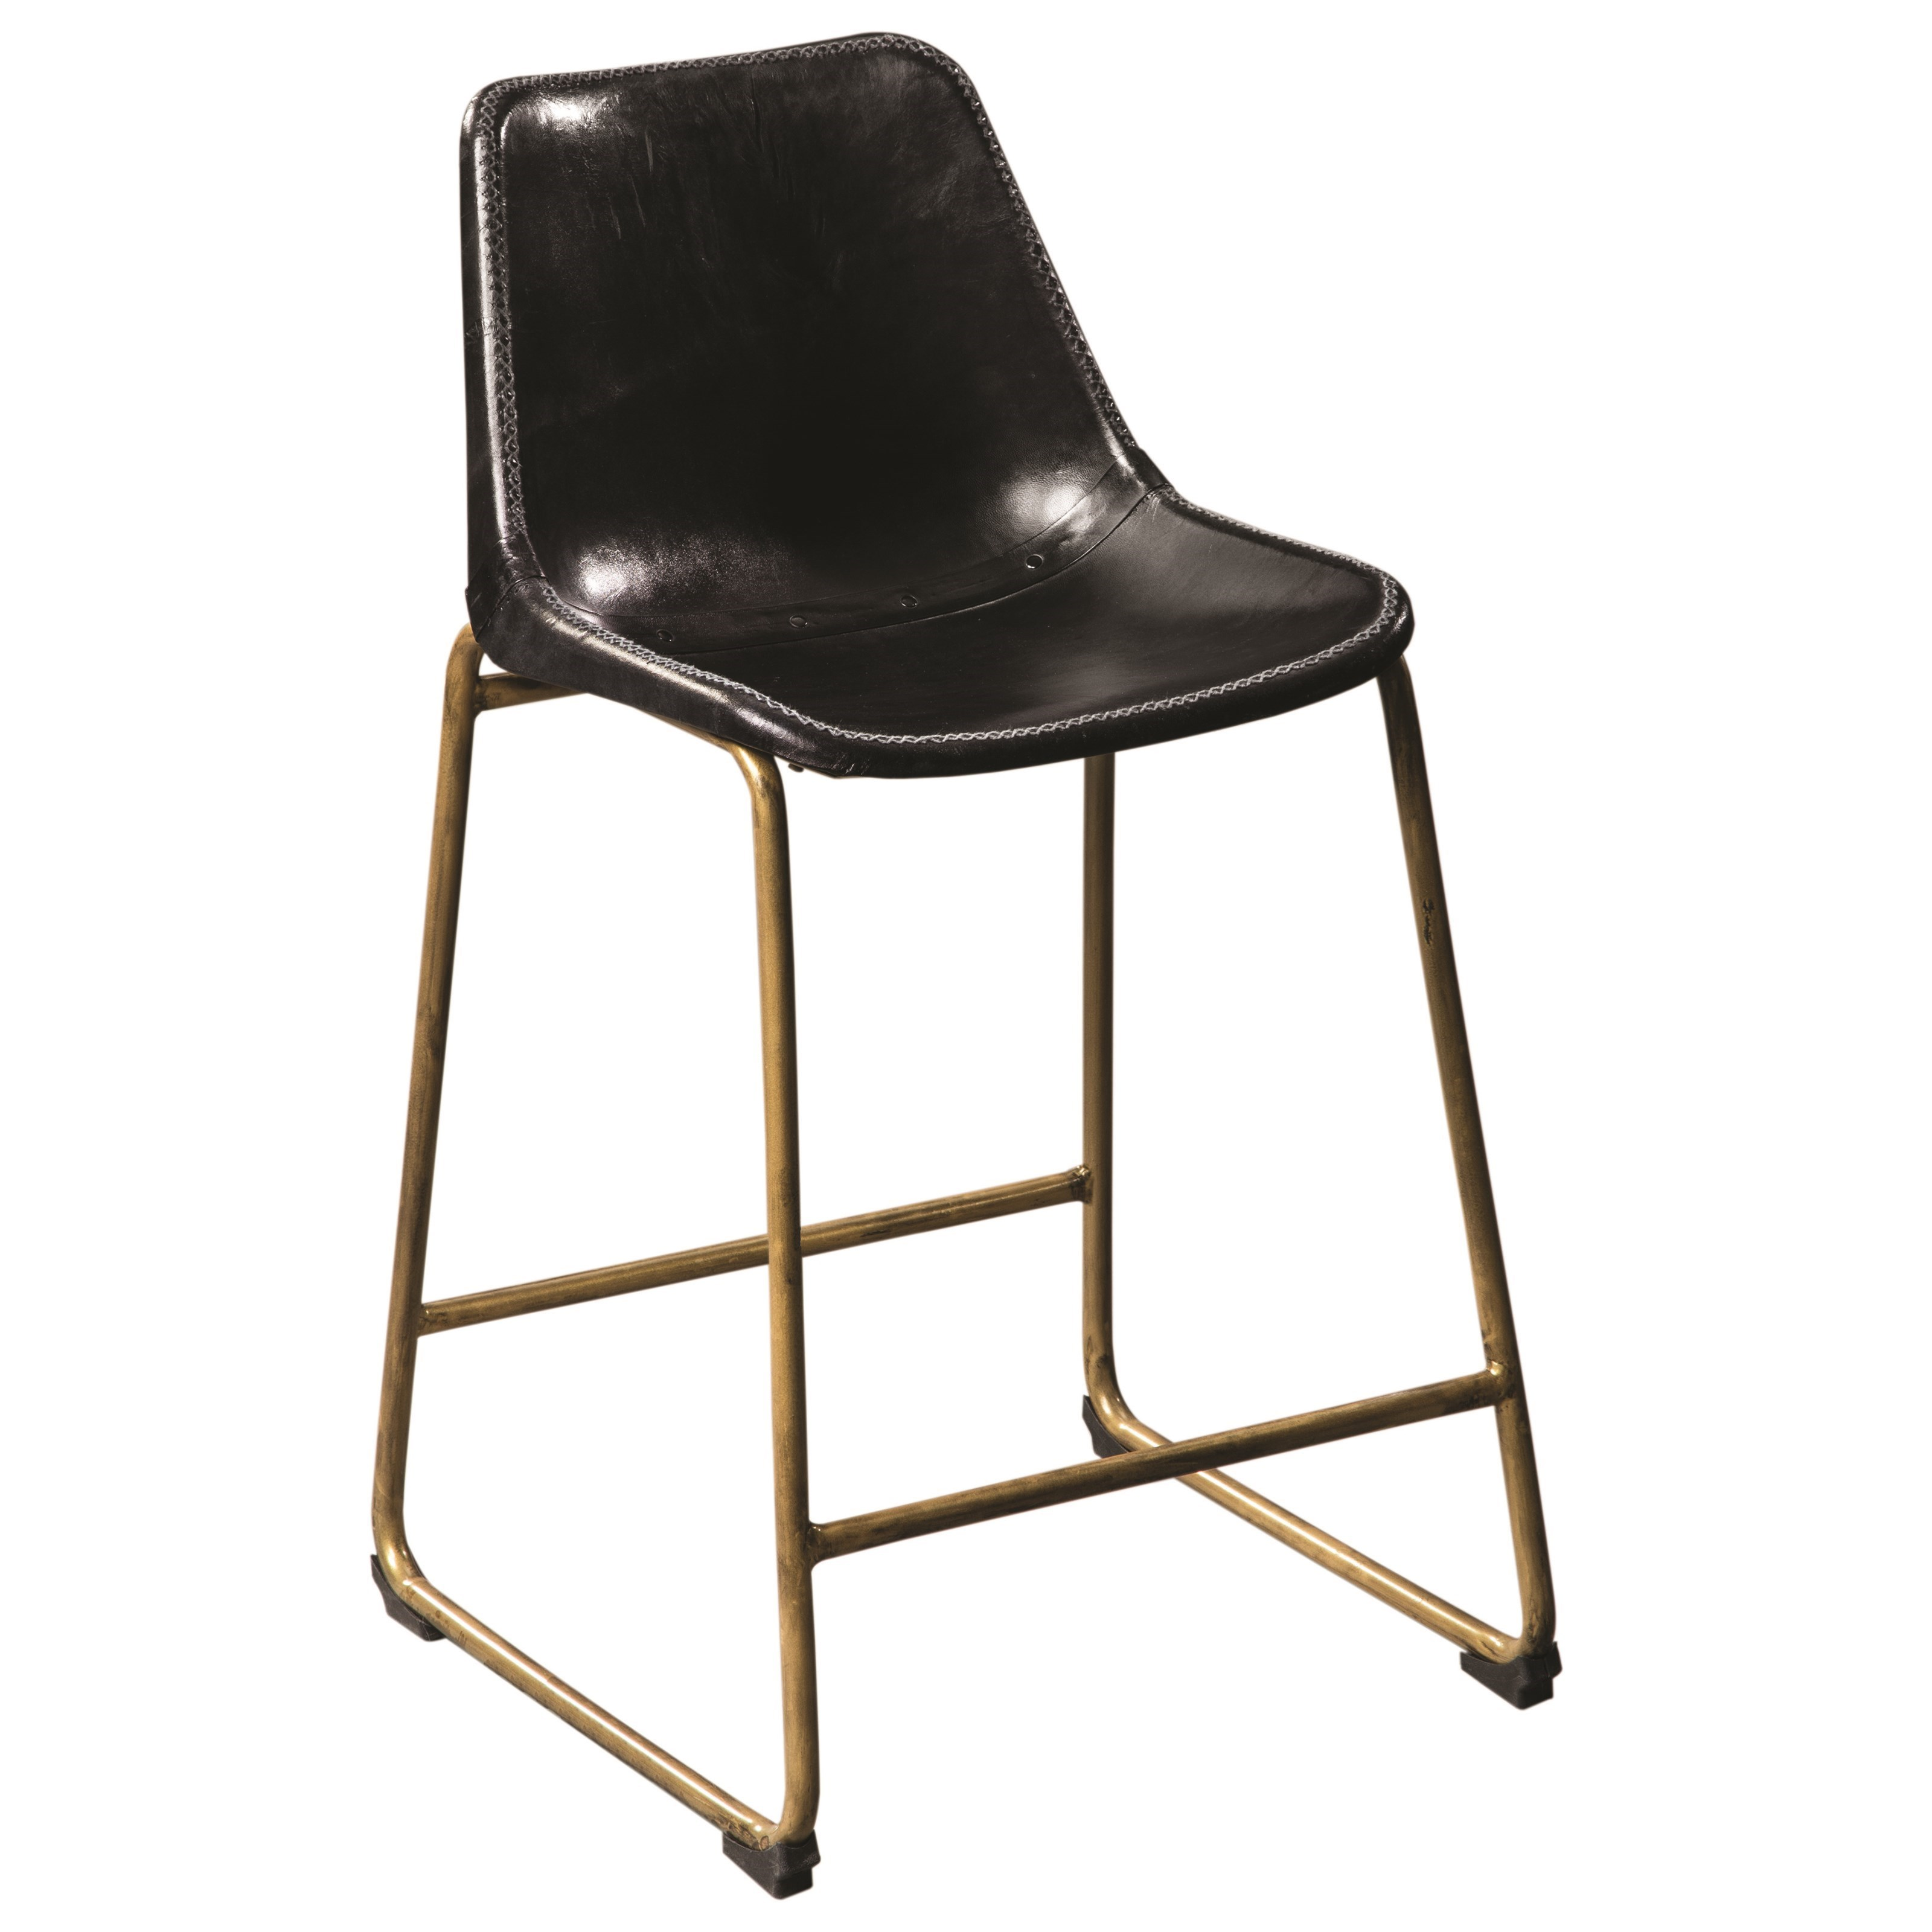 Scott Living 102967 Counter Height Stool - Item Number: 102967